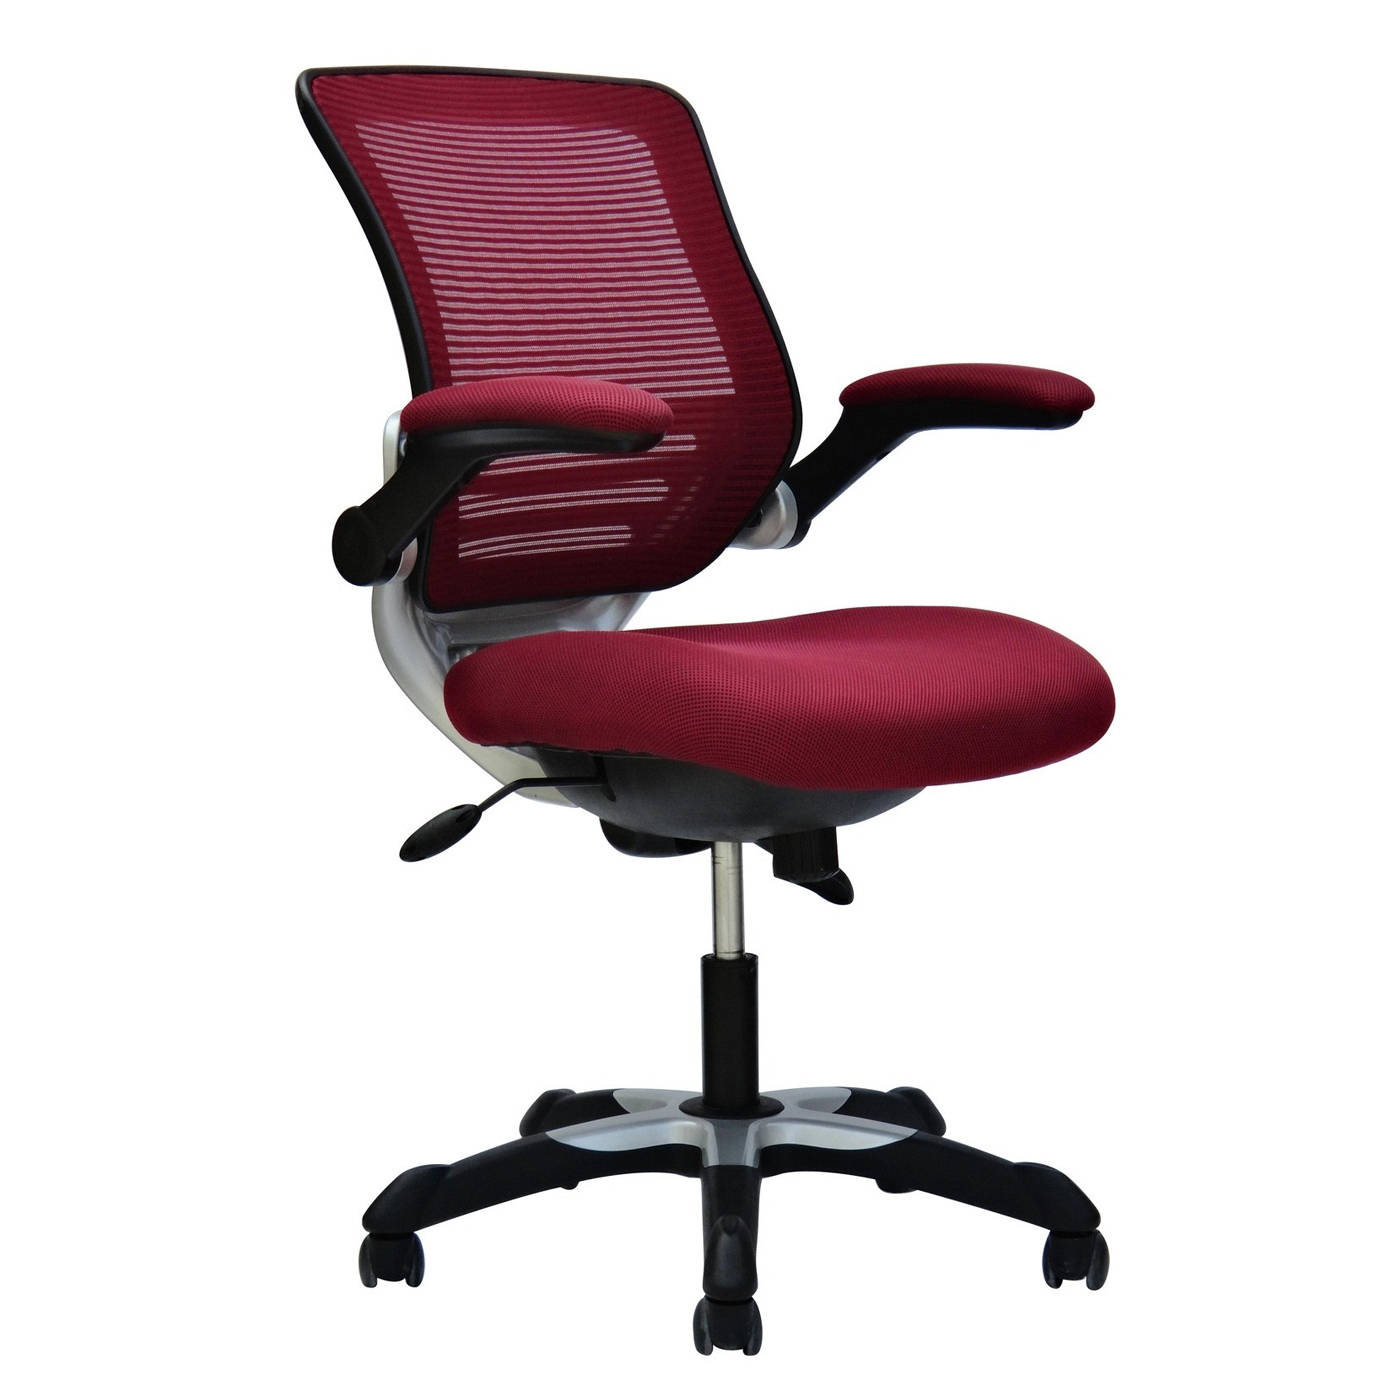 Ergonomic Swivel Office Chair Adjustable Ergonomic Office Computer Desk Swivel Chair